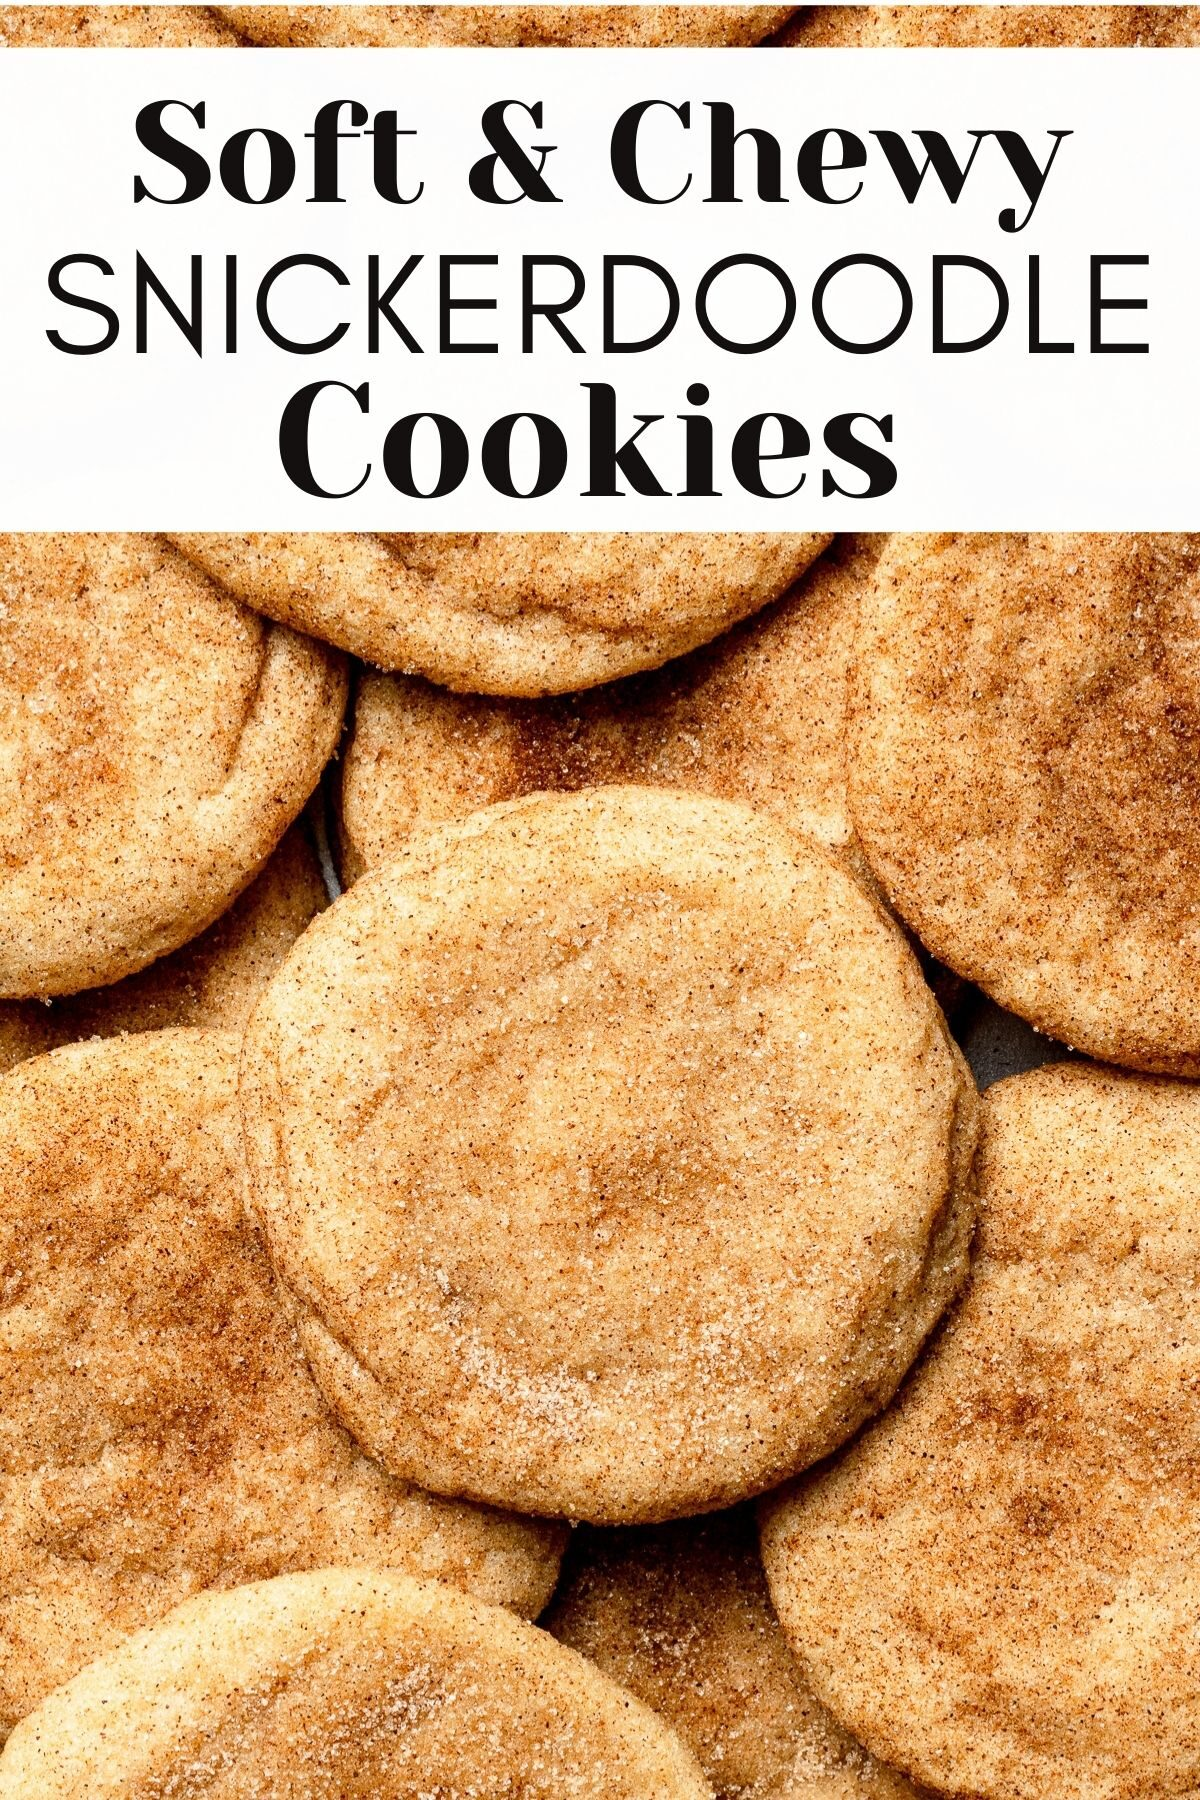 snickerdoodle cookies in a pile with text overlay